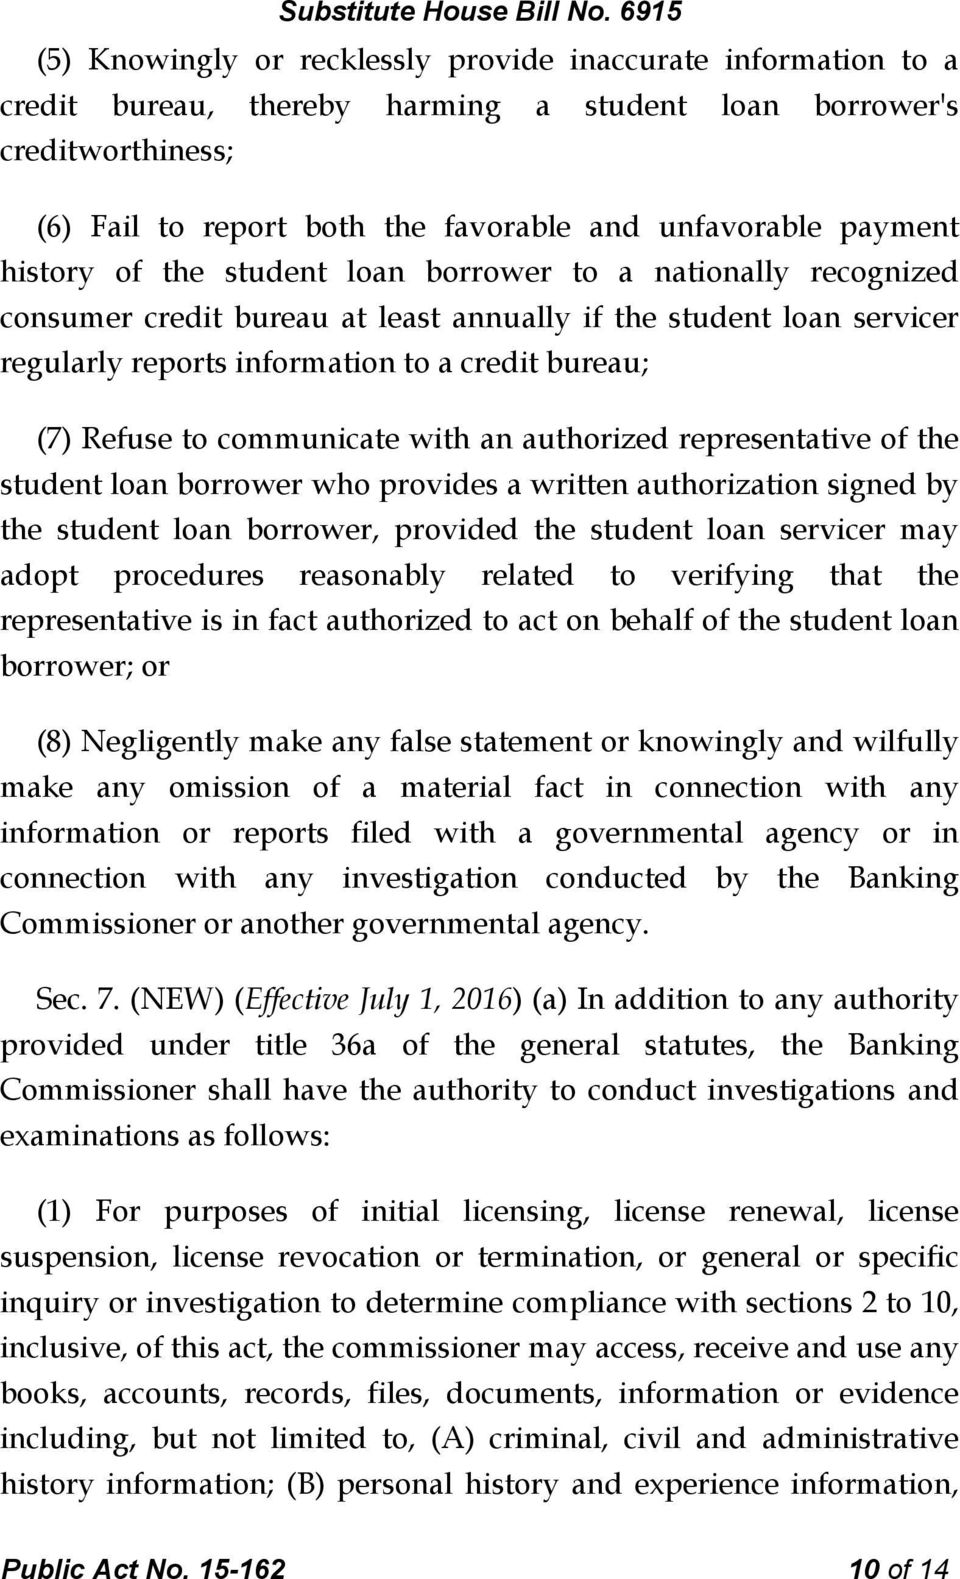 Refuse to communicate with an authorized representative of the student loan borrower who provides a written authorization signed by the student loan borrower, provided the student loan servicer may